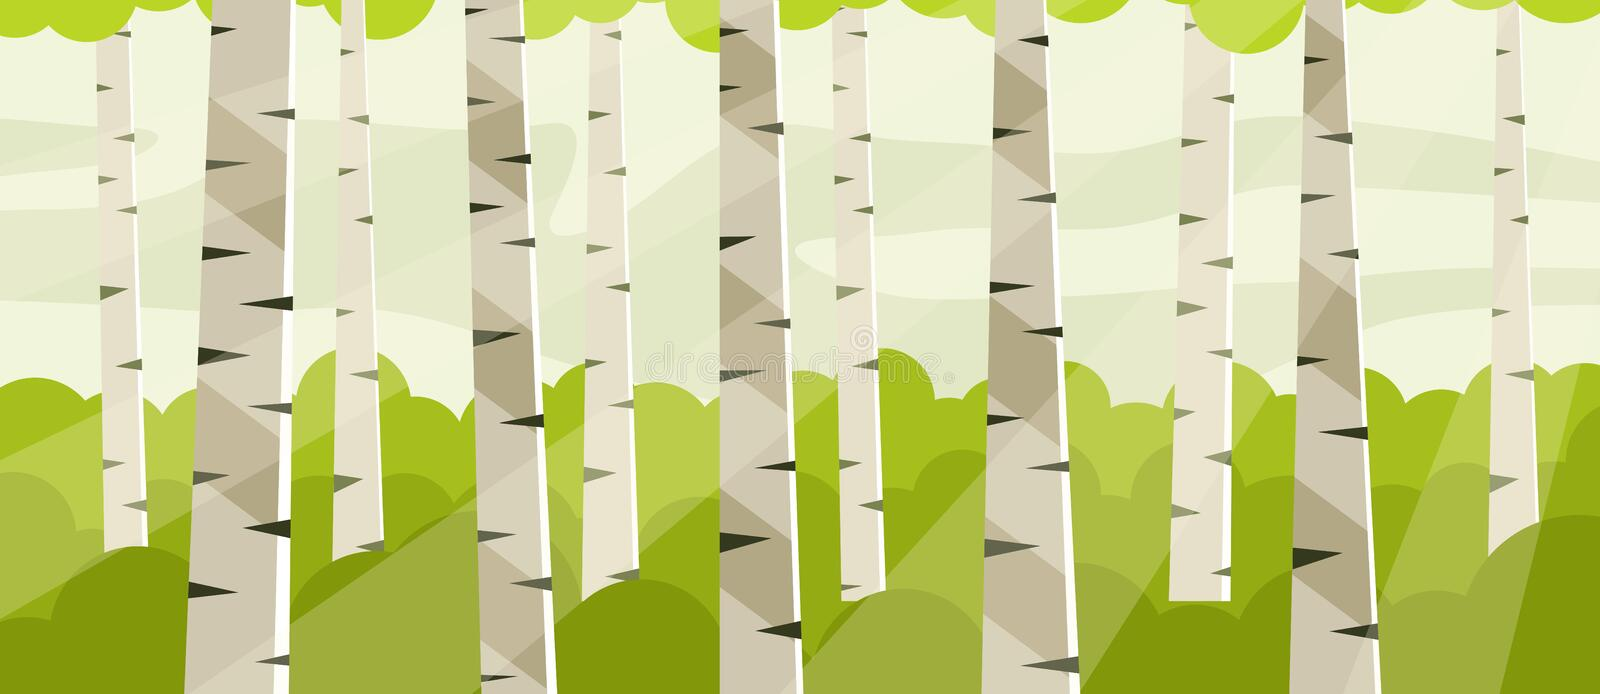 Birch grove at noon. Birch tree trunks stock illustration